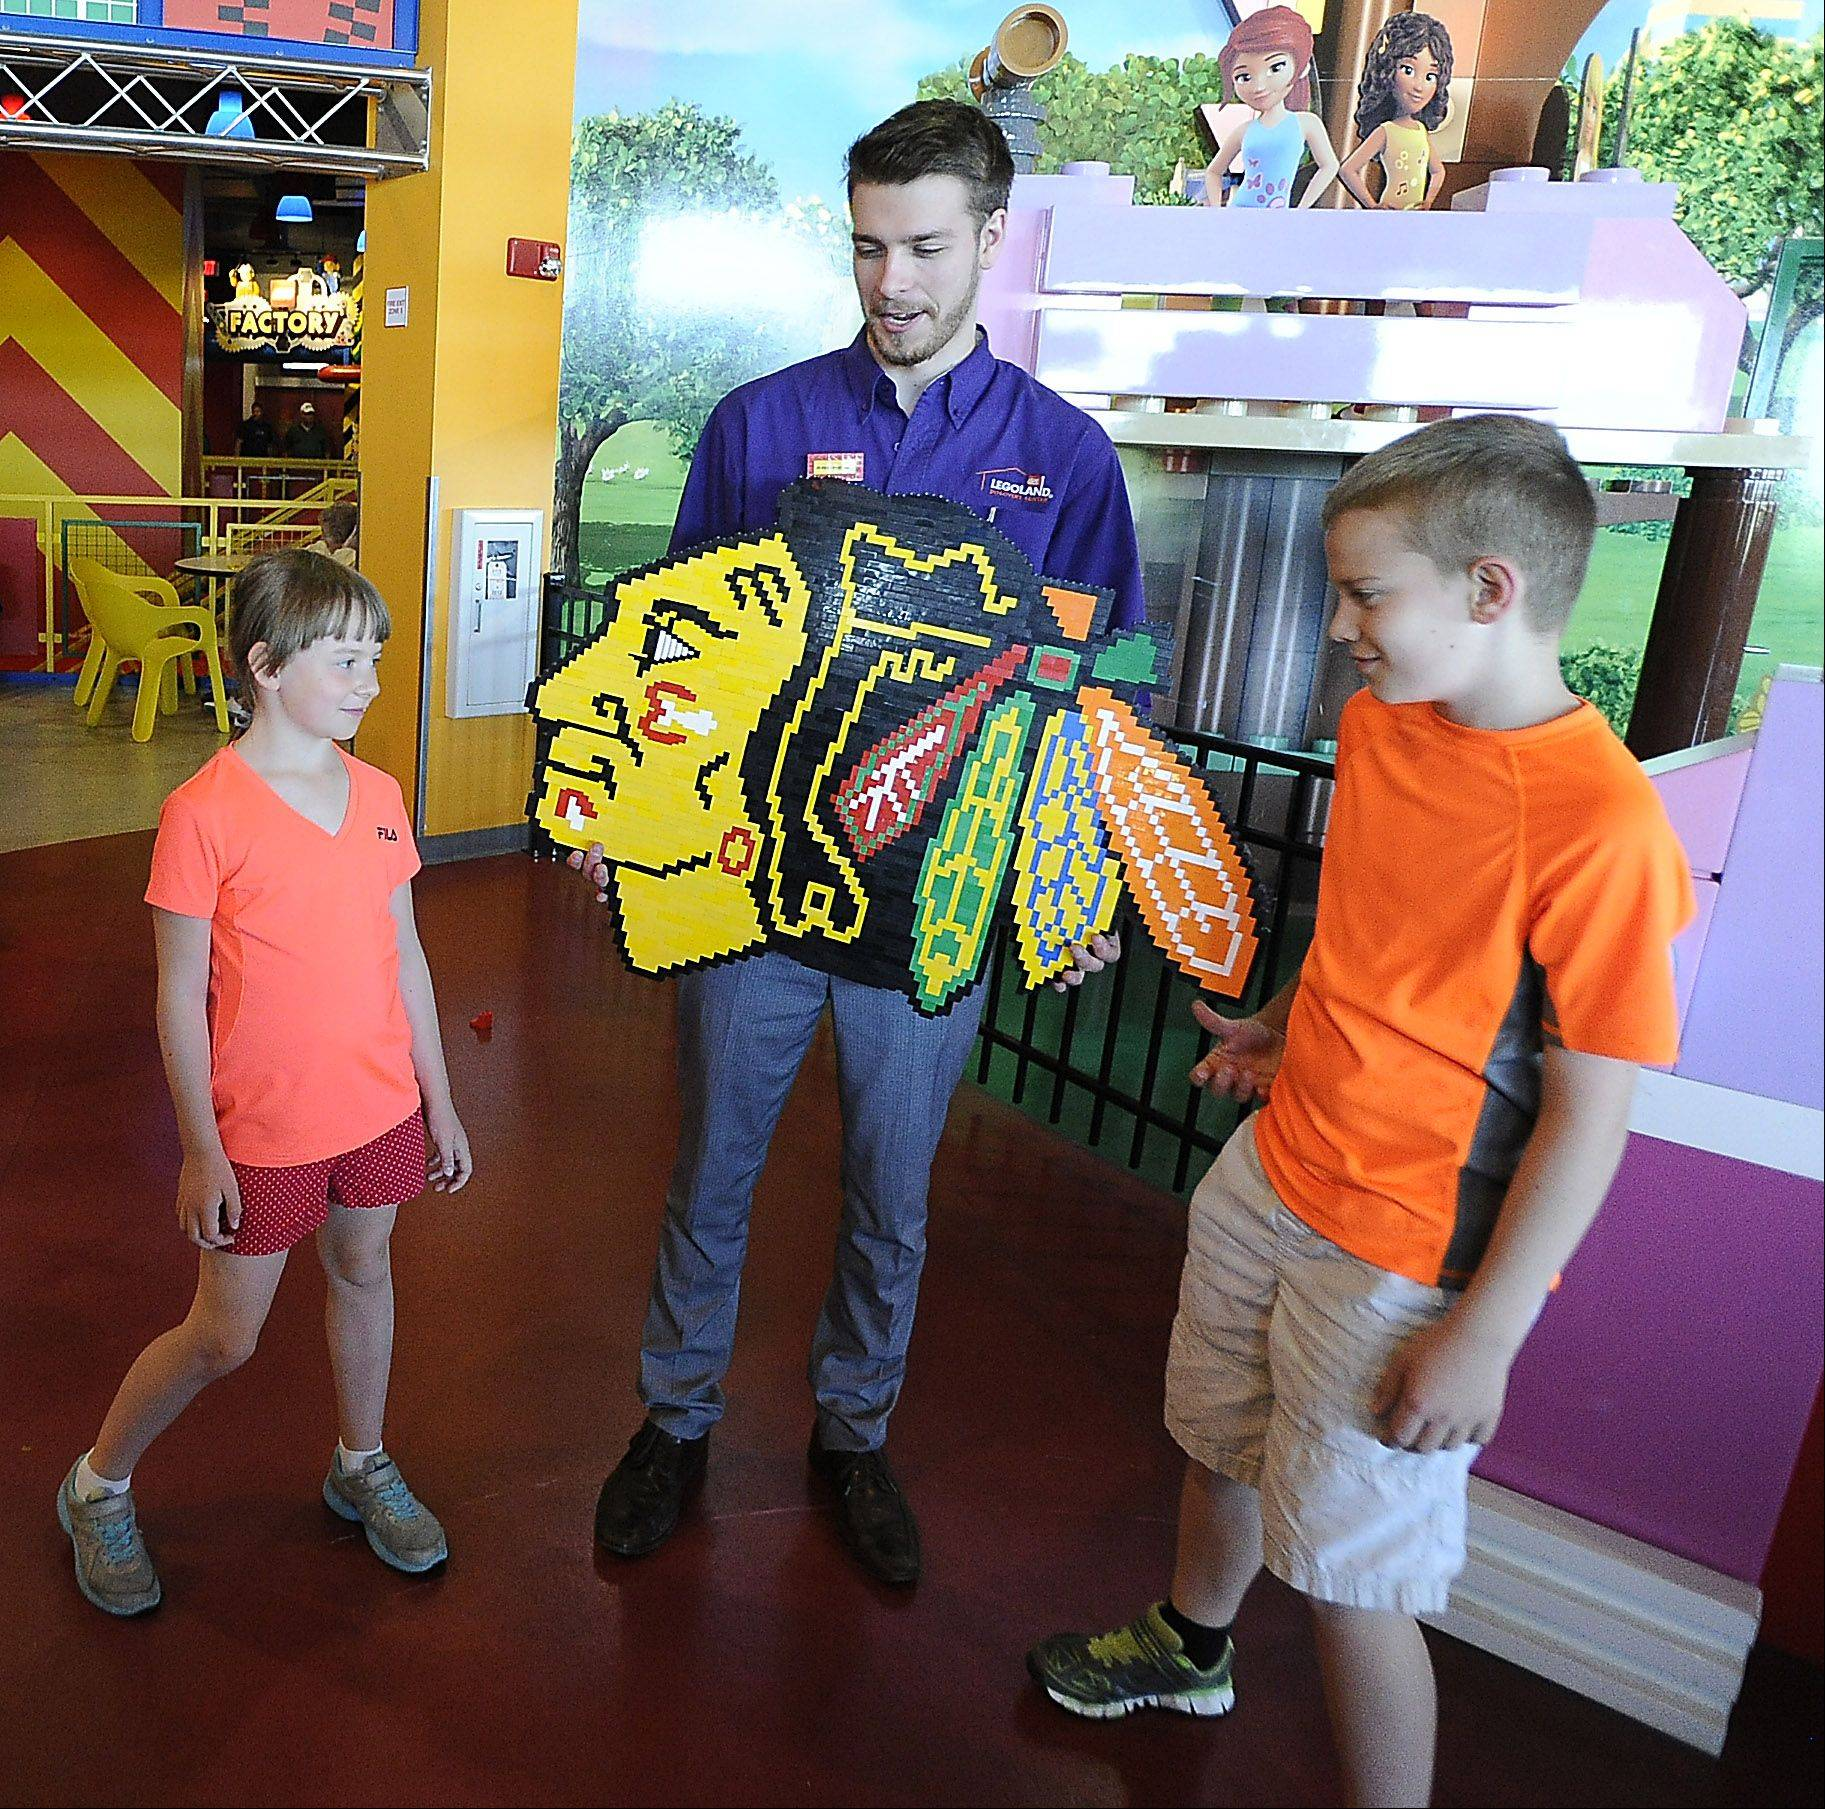 Andrew Johnson of Bartlett shows David, 10, and Gabija, 7, Fedaravicius of Streamwood the Chicago Blackhawks logo he made using 756 Lego pieces. The design, which Johnson built in about a week, was on display Monday at Legoland Discovery Center in Schaumburg.